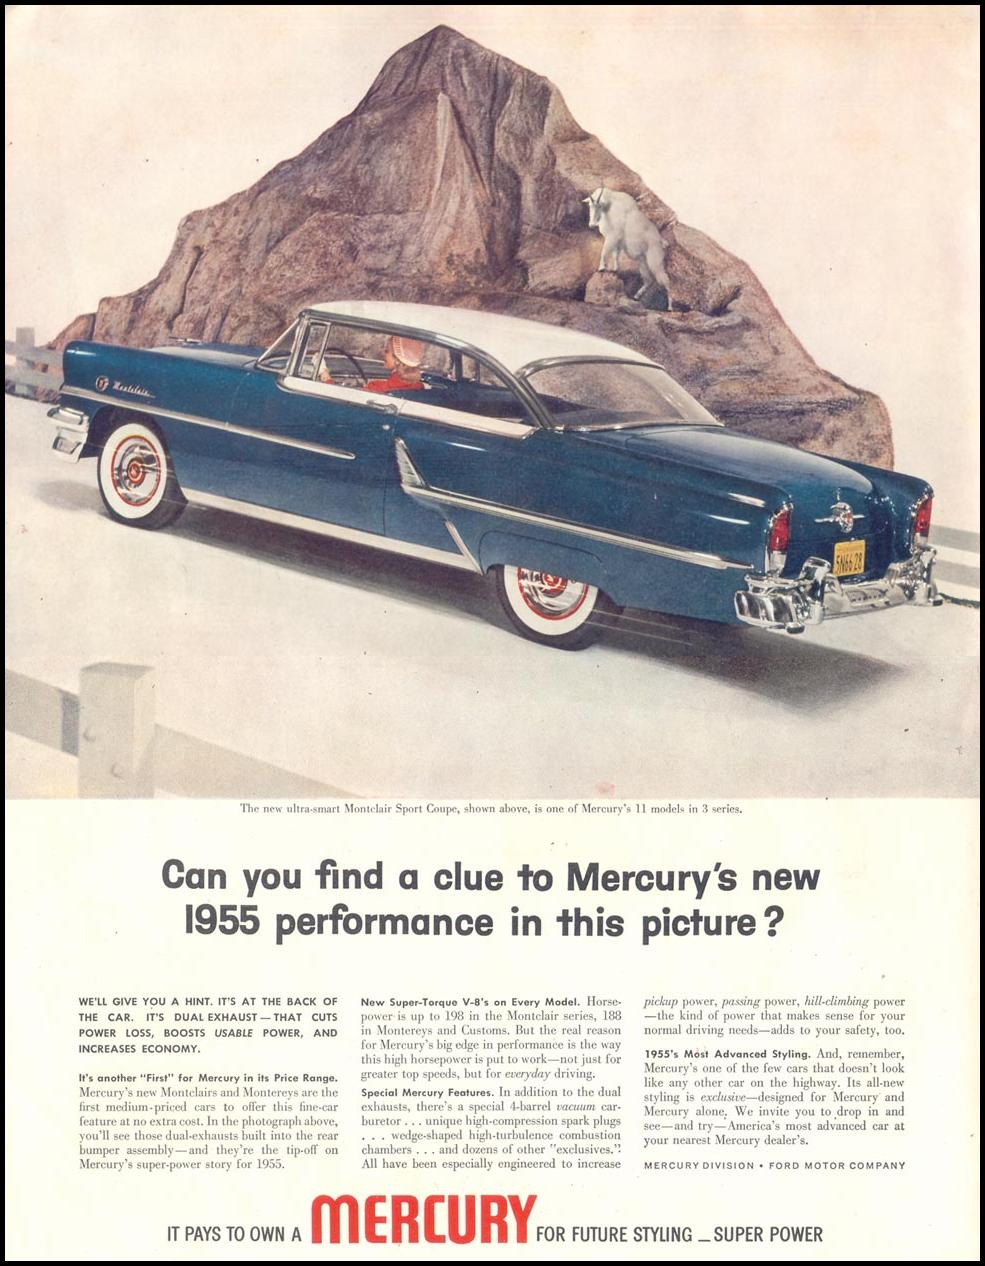 MERCURY AUTOMOBILES SATURDAY EVENING POST 04/09/1955 INSIDE FRONT